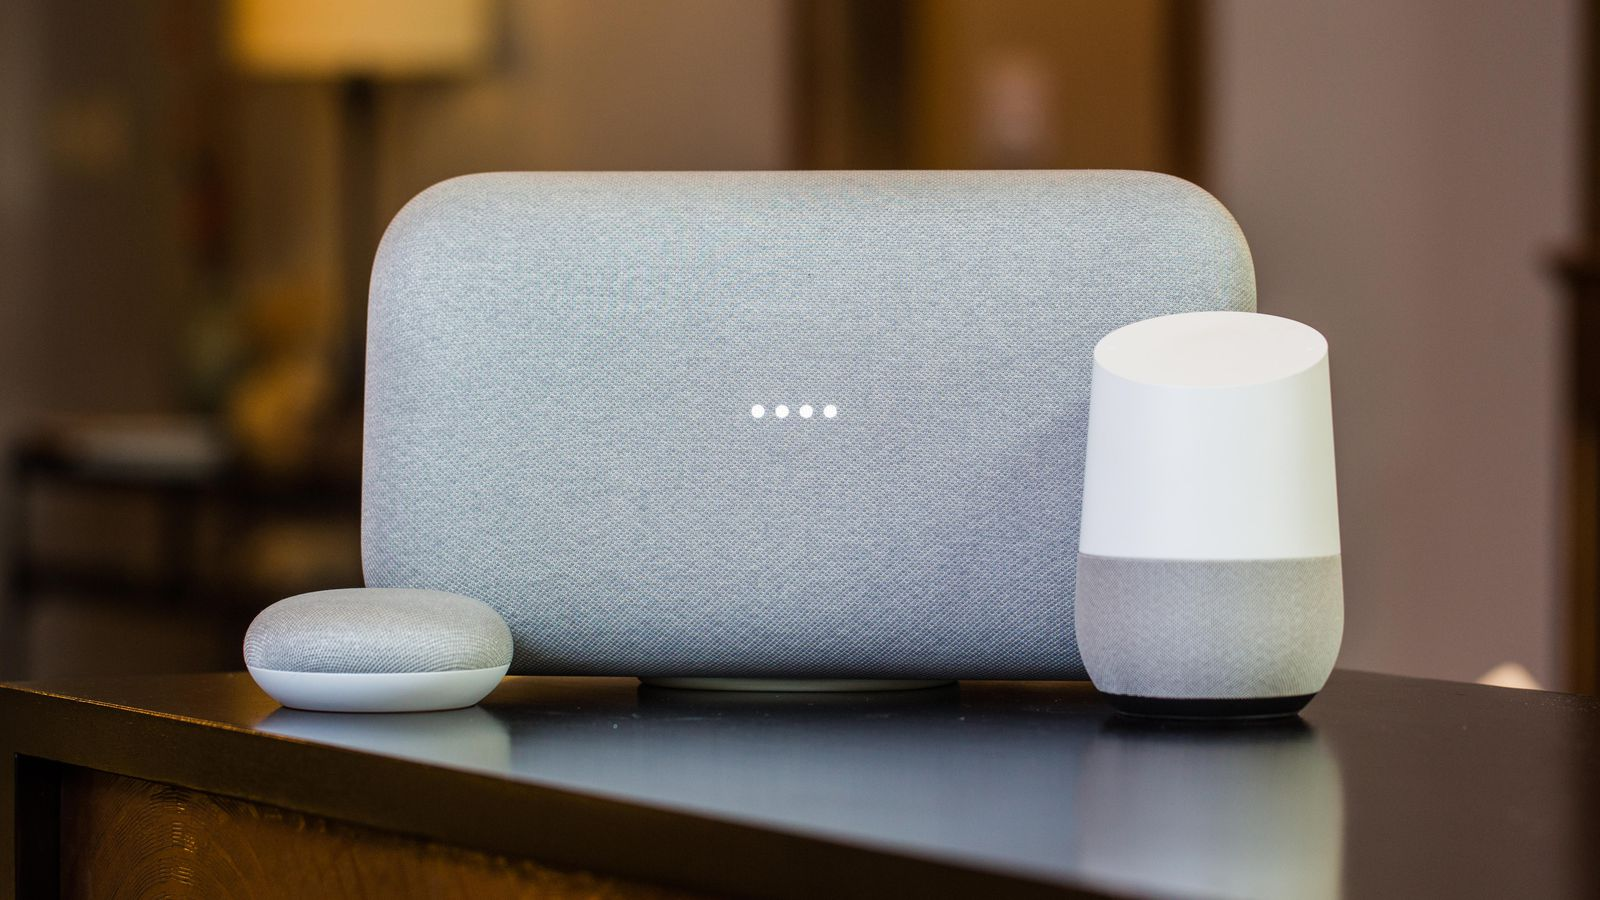 Guida - HA] Integrare Home Assistant in Google Assistant - Itech's Blog